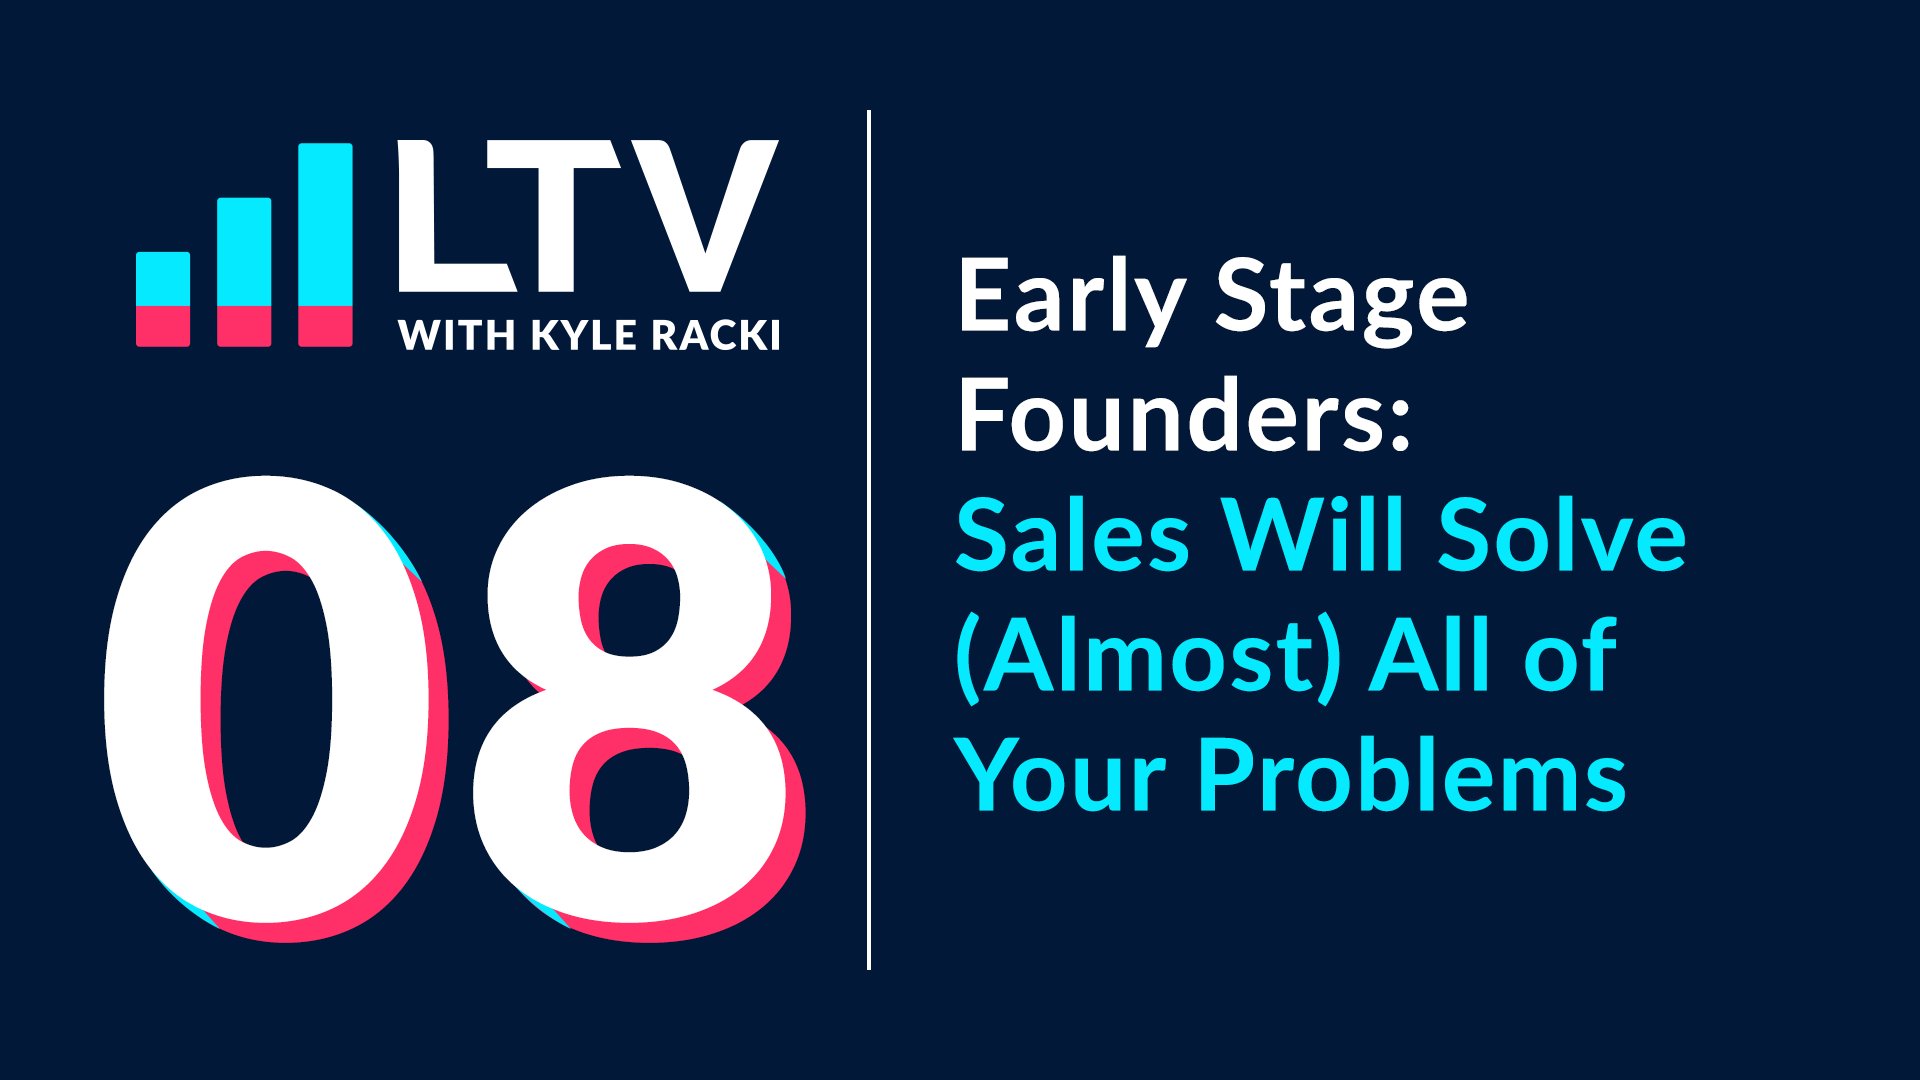 LTV Podcast Episode 8: Early Stage Founders - Sales Will Solve (Almost) All of Your Problems